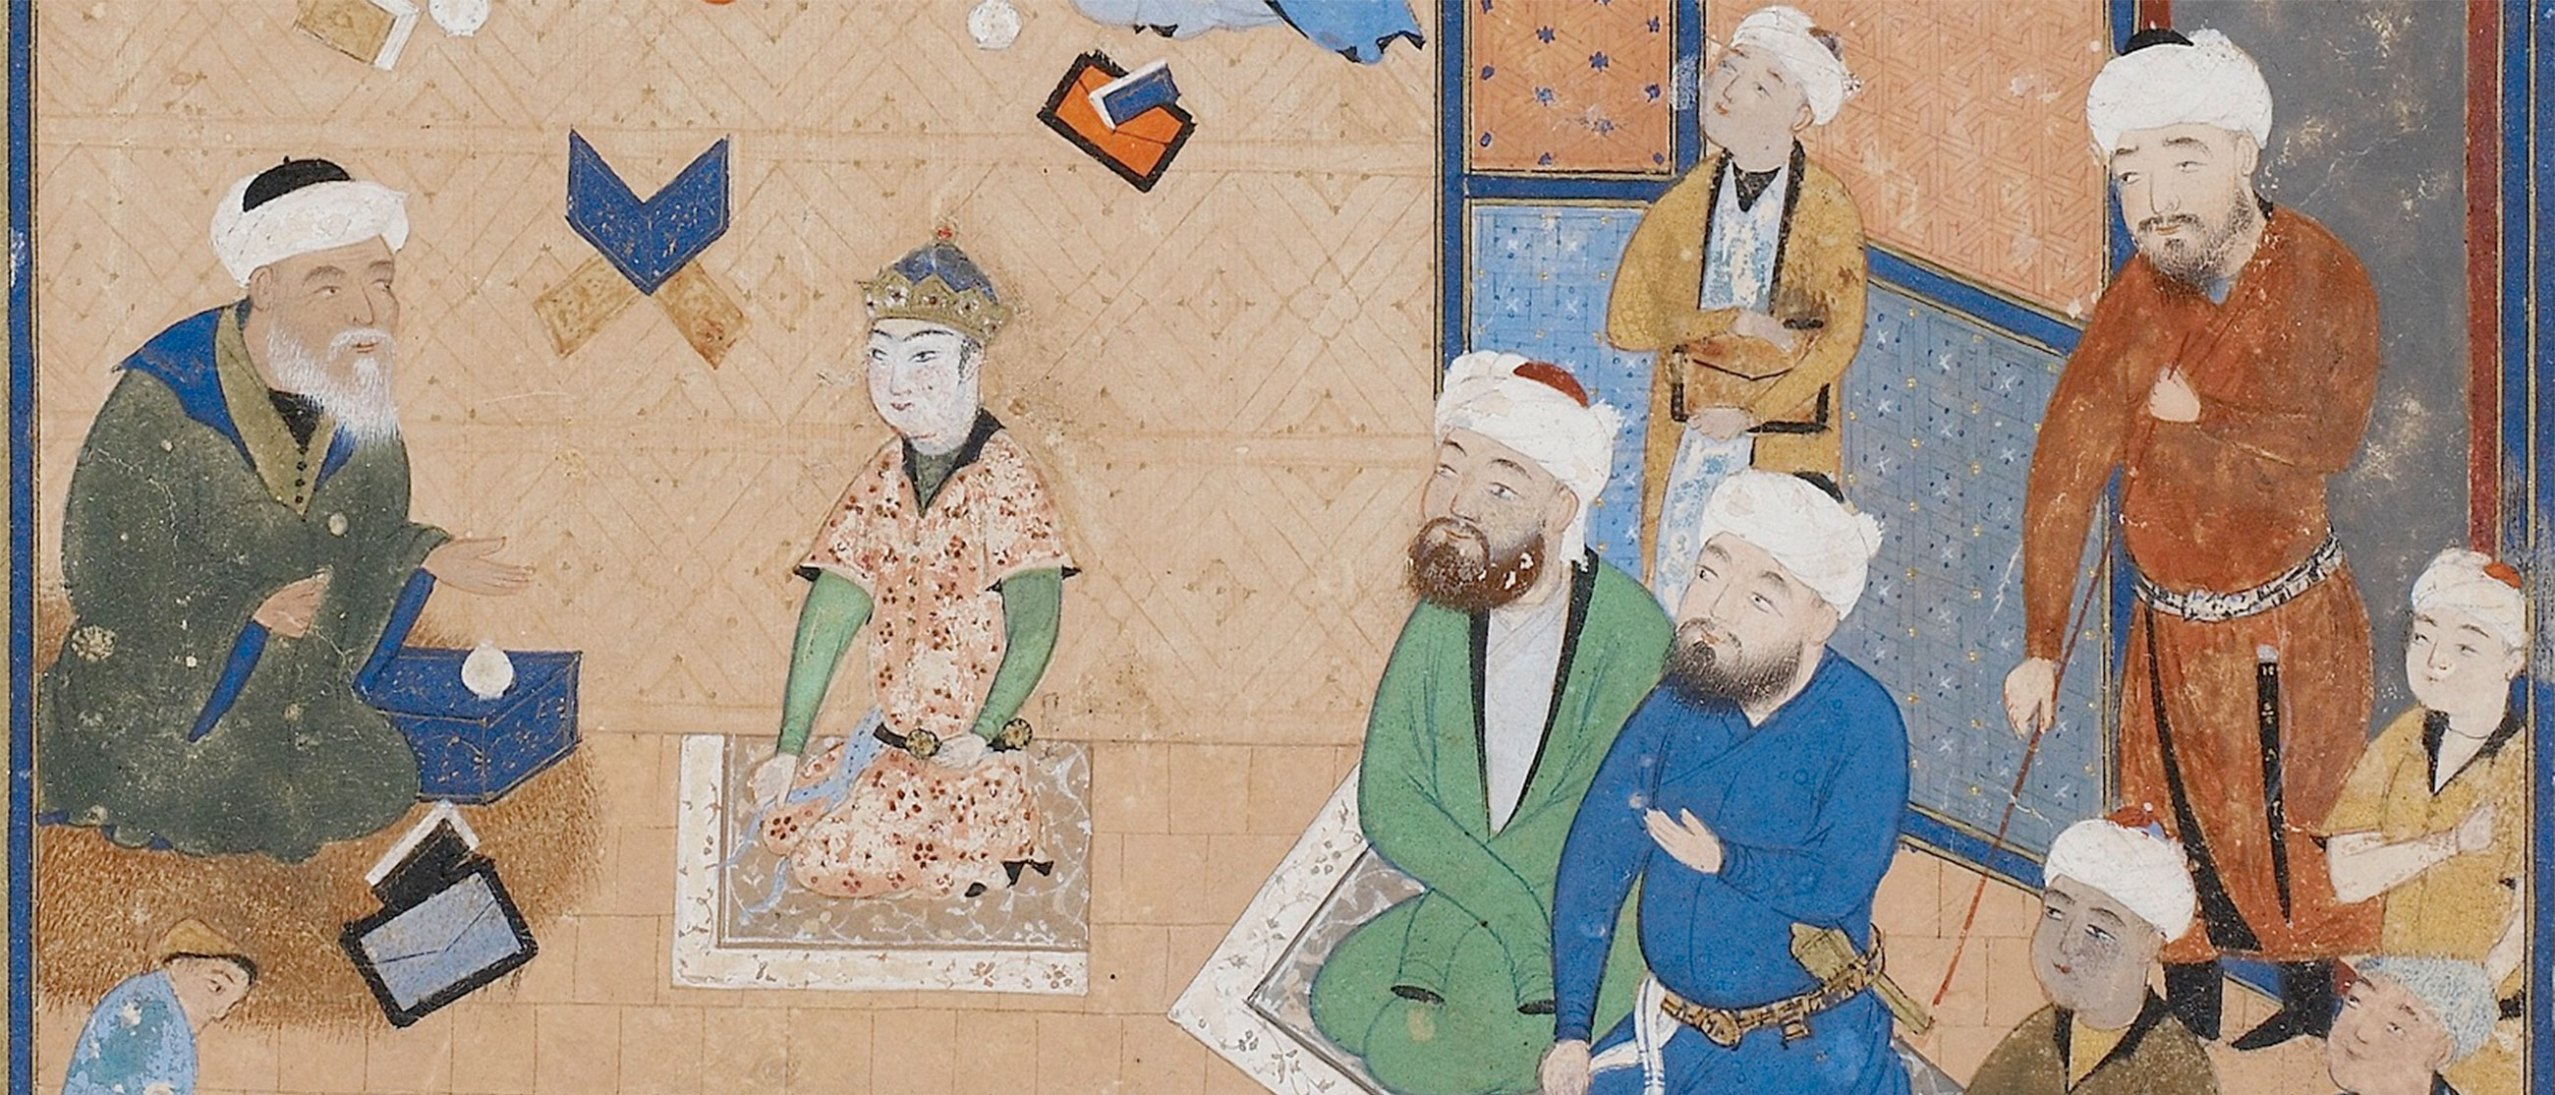 Detail of a painting, depicting several men kneeling on cushions.